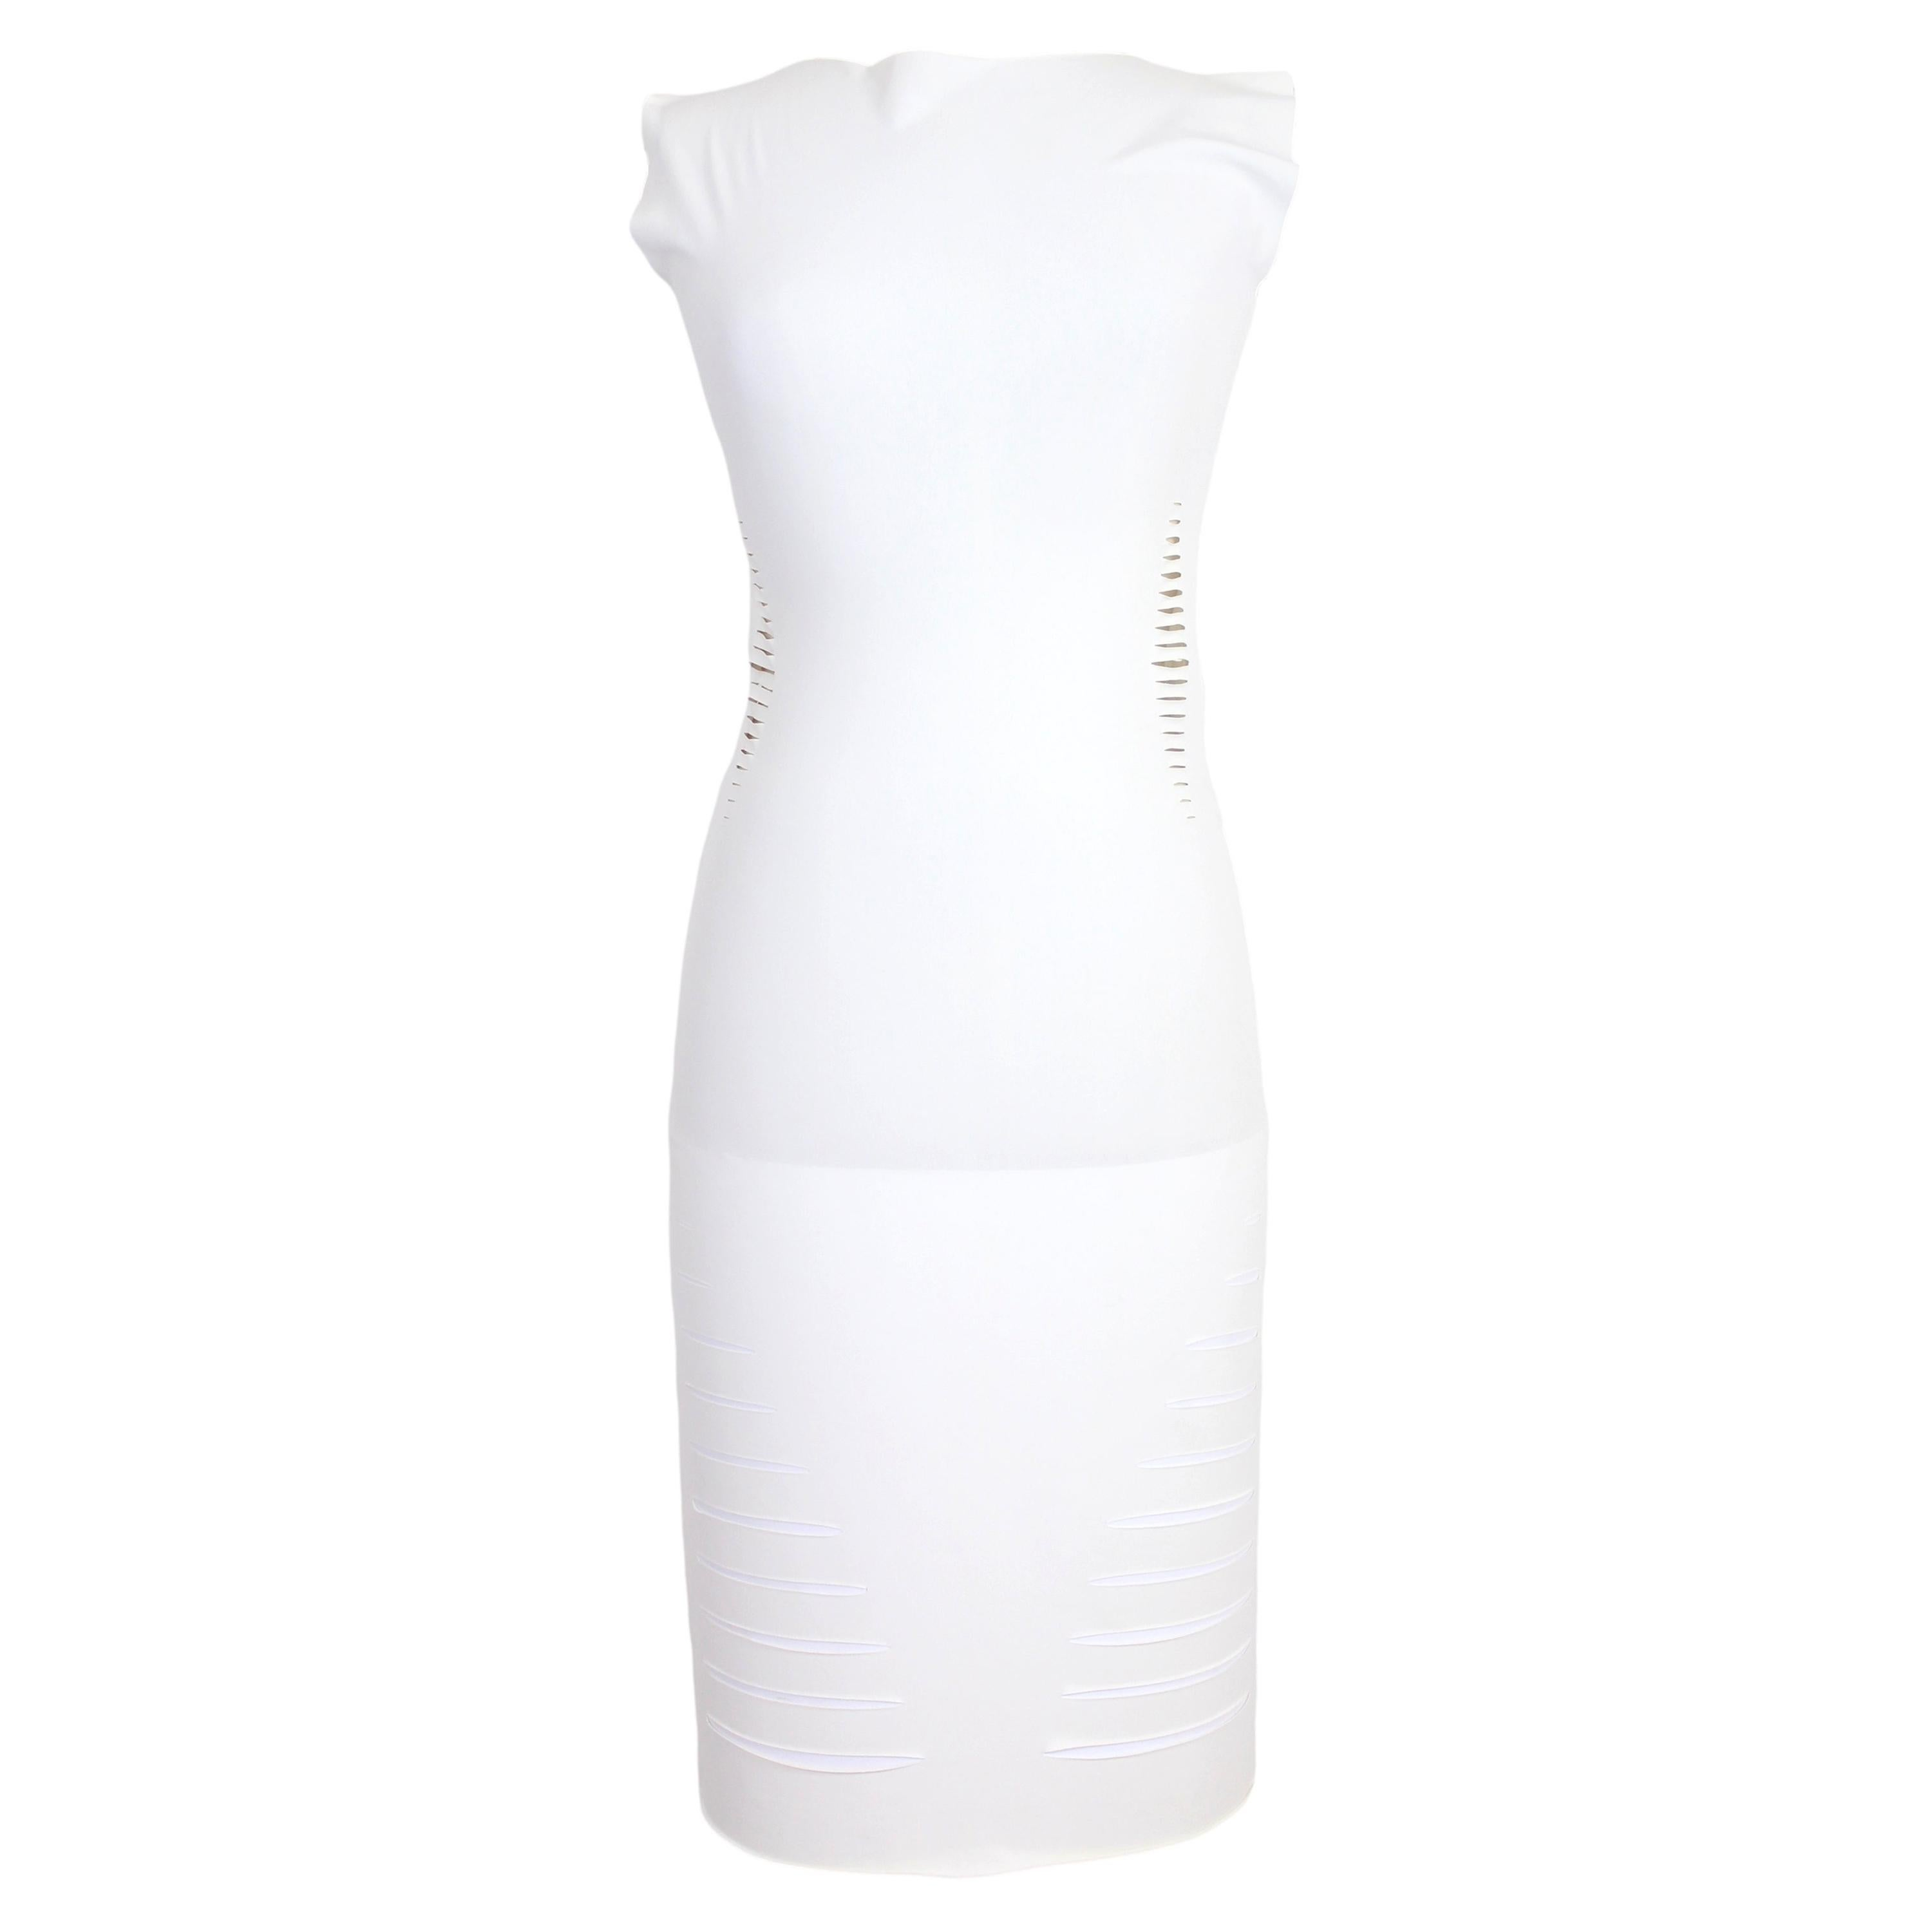 Cavalli White Laser Cut Sheath Fitted Party Dress 2000s